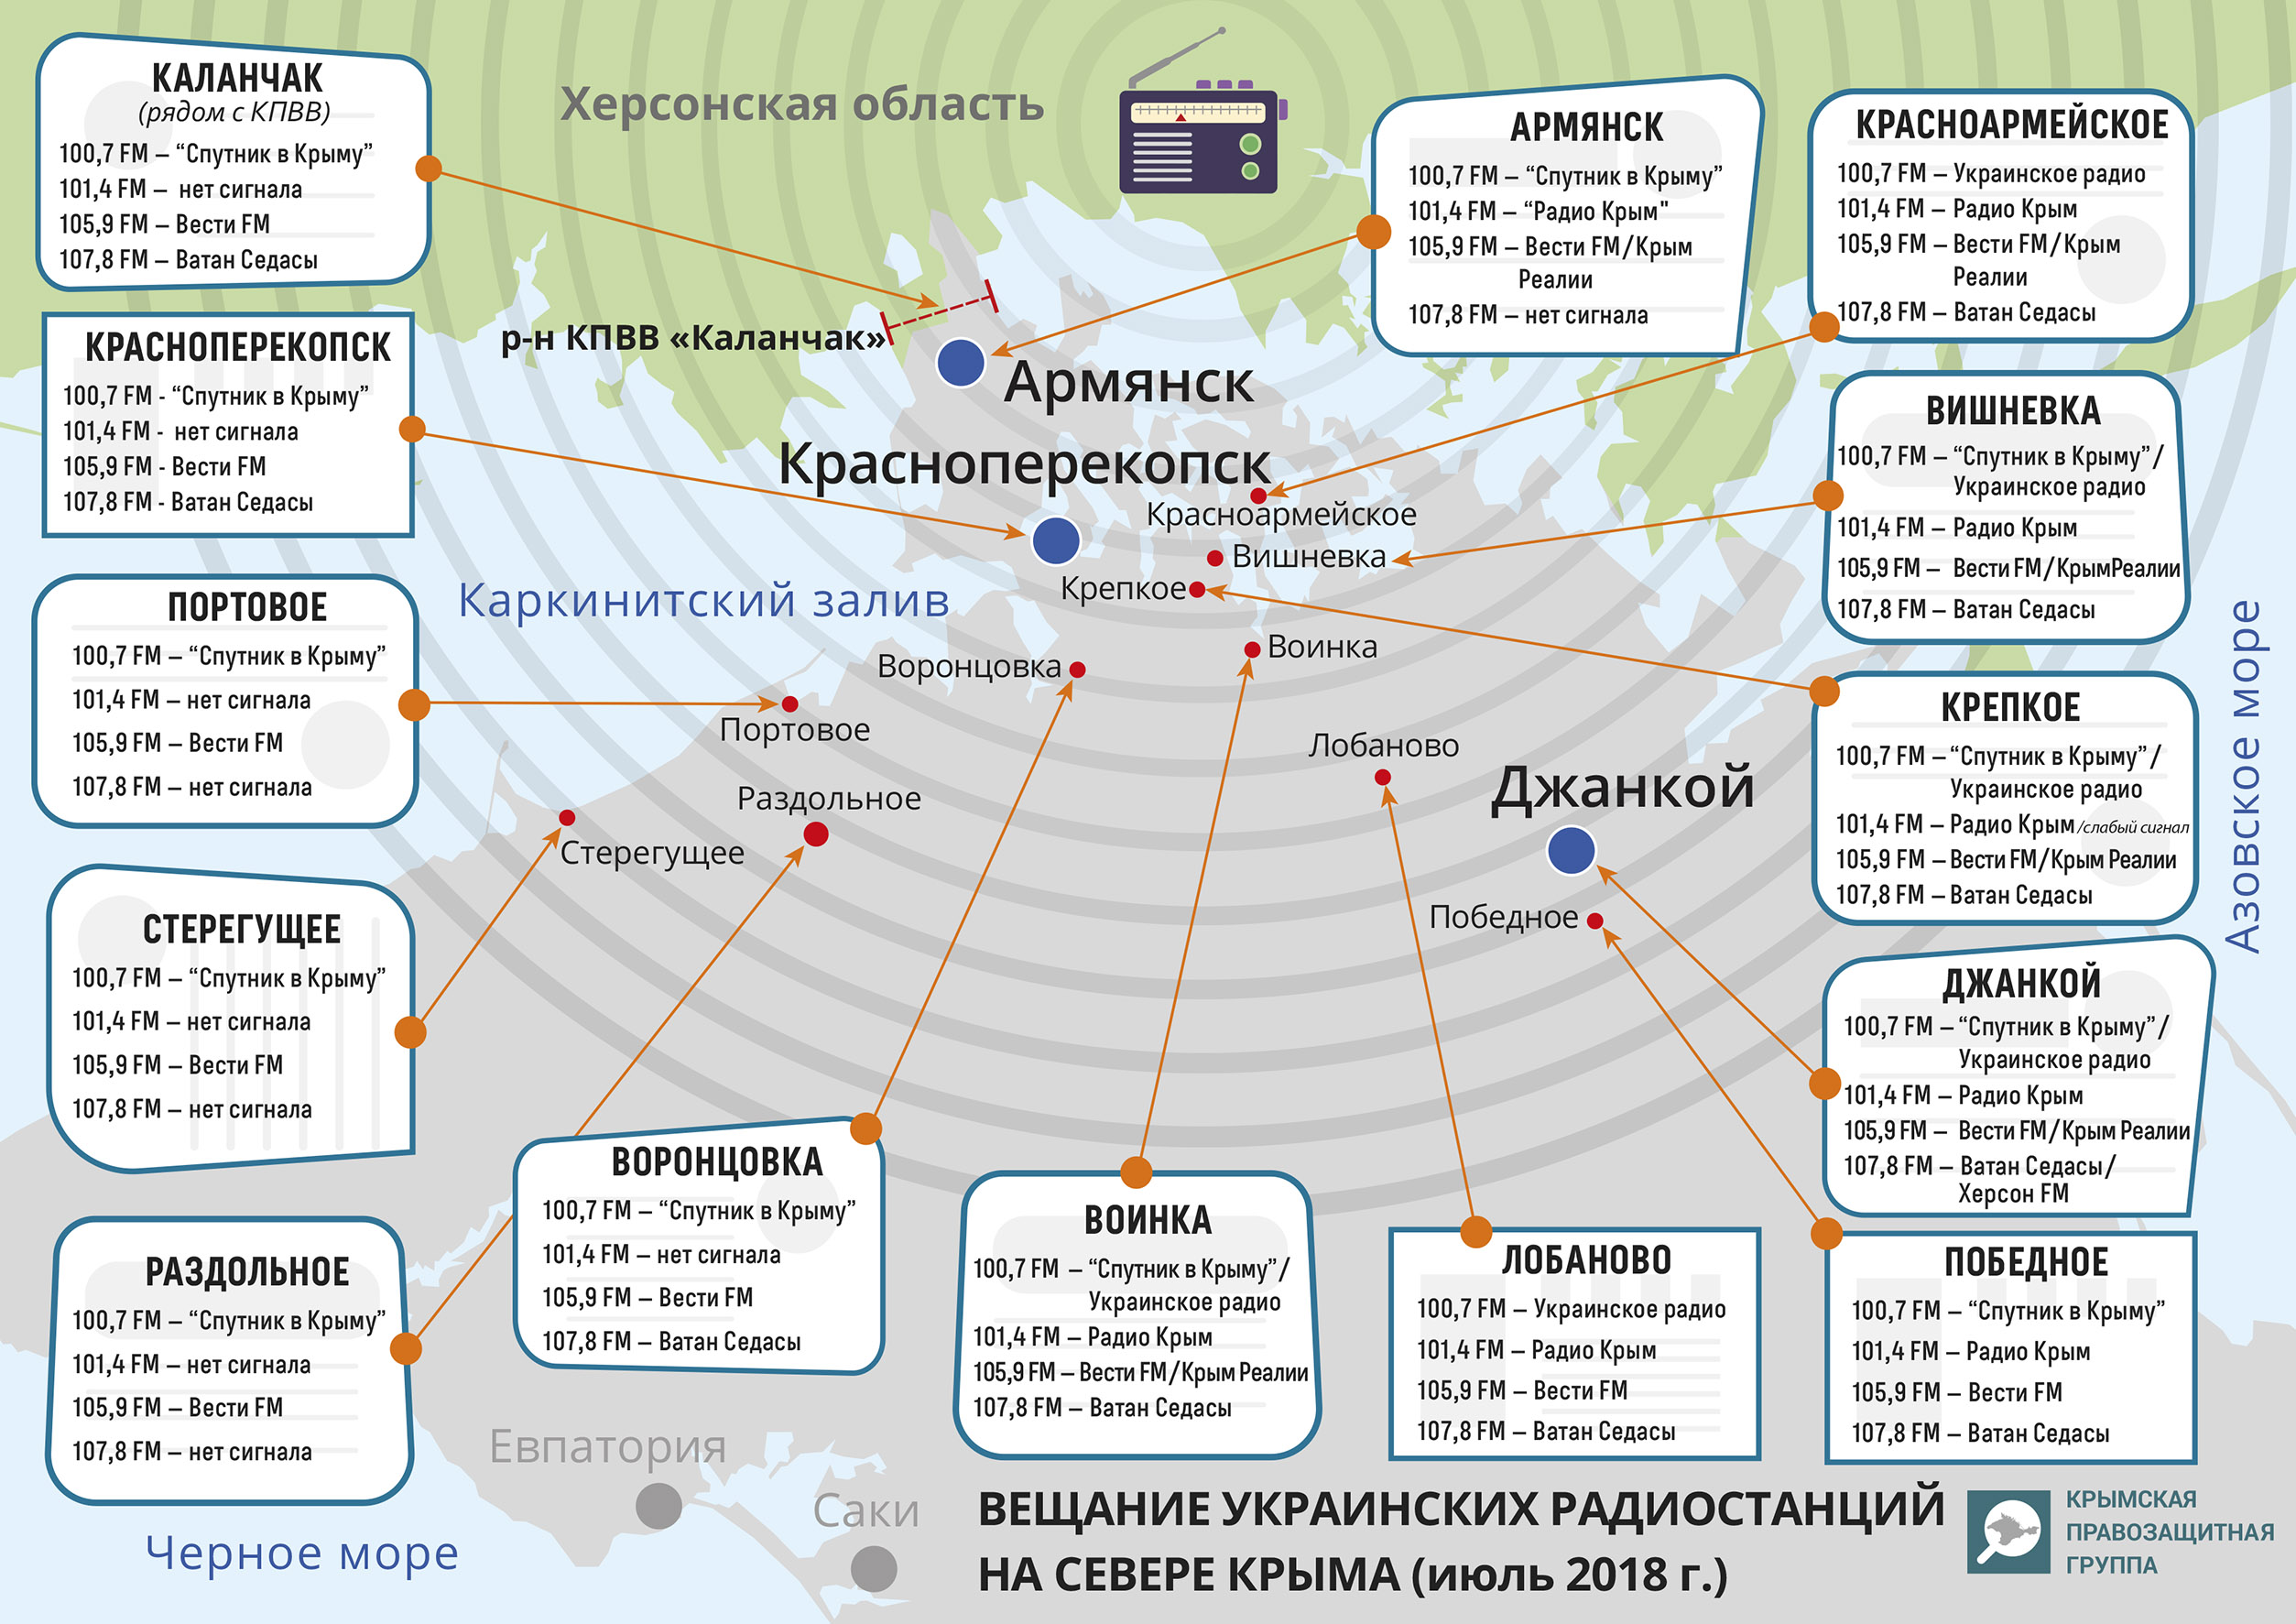 Radio Broadcasting to Crimea from a New Ukrainian Tower Jammed By Russian Signal